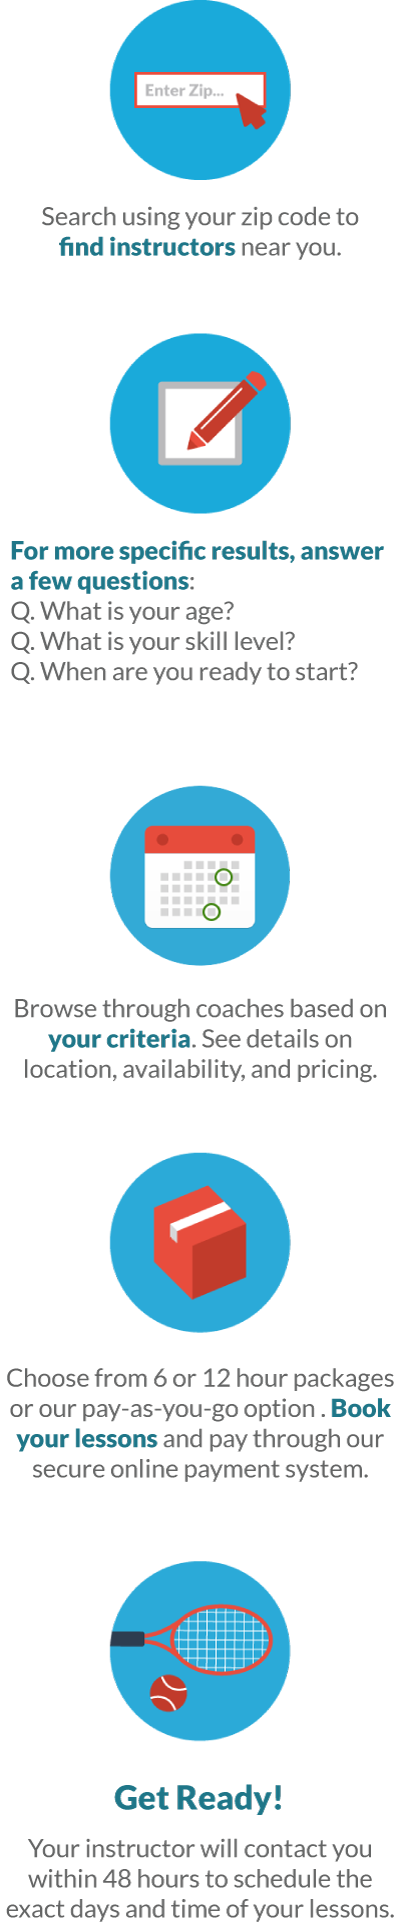 Search using your zip code to find instructors near you. For more specific results, answer a few questions. Choose from 6 or 12 hour packages or our pay-as-you-go option. Browse through coaches based on your criteria. See details on location, typical availability, and pricing. Book your lessons and pay through our secure online payment system.